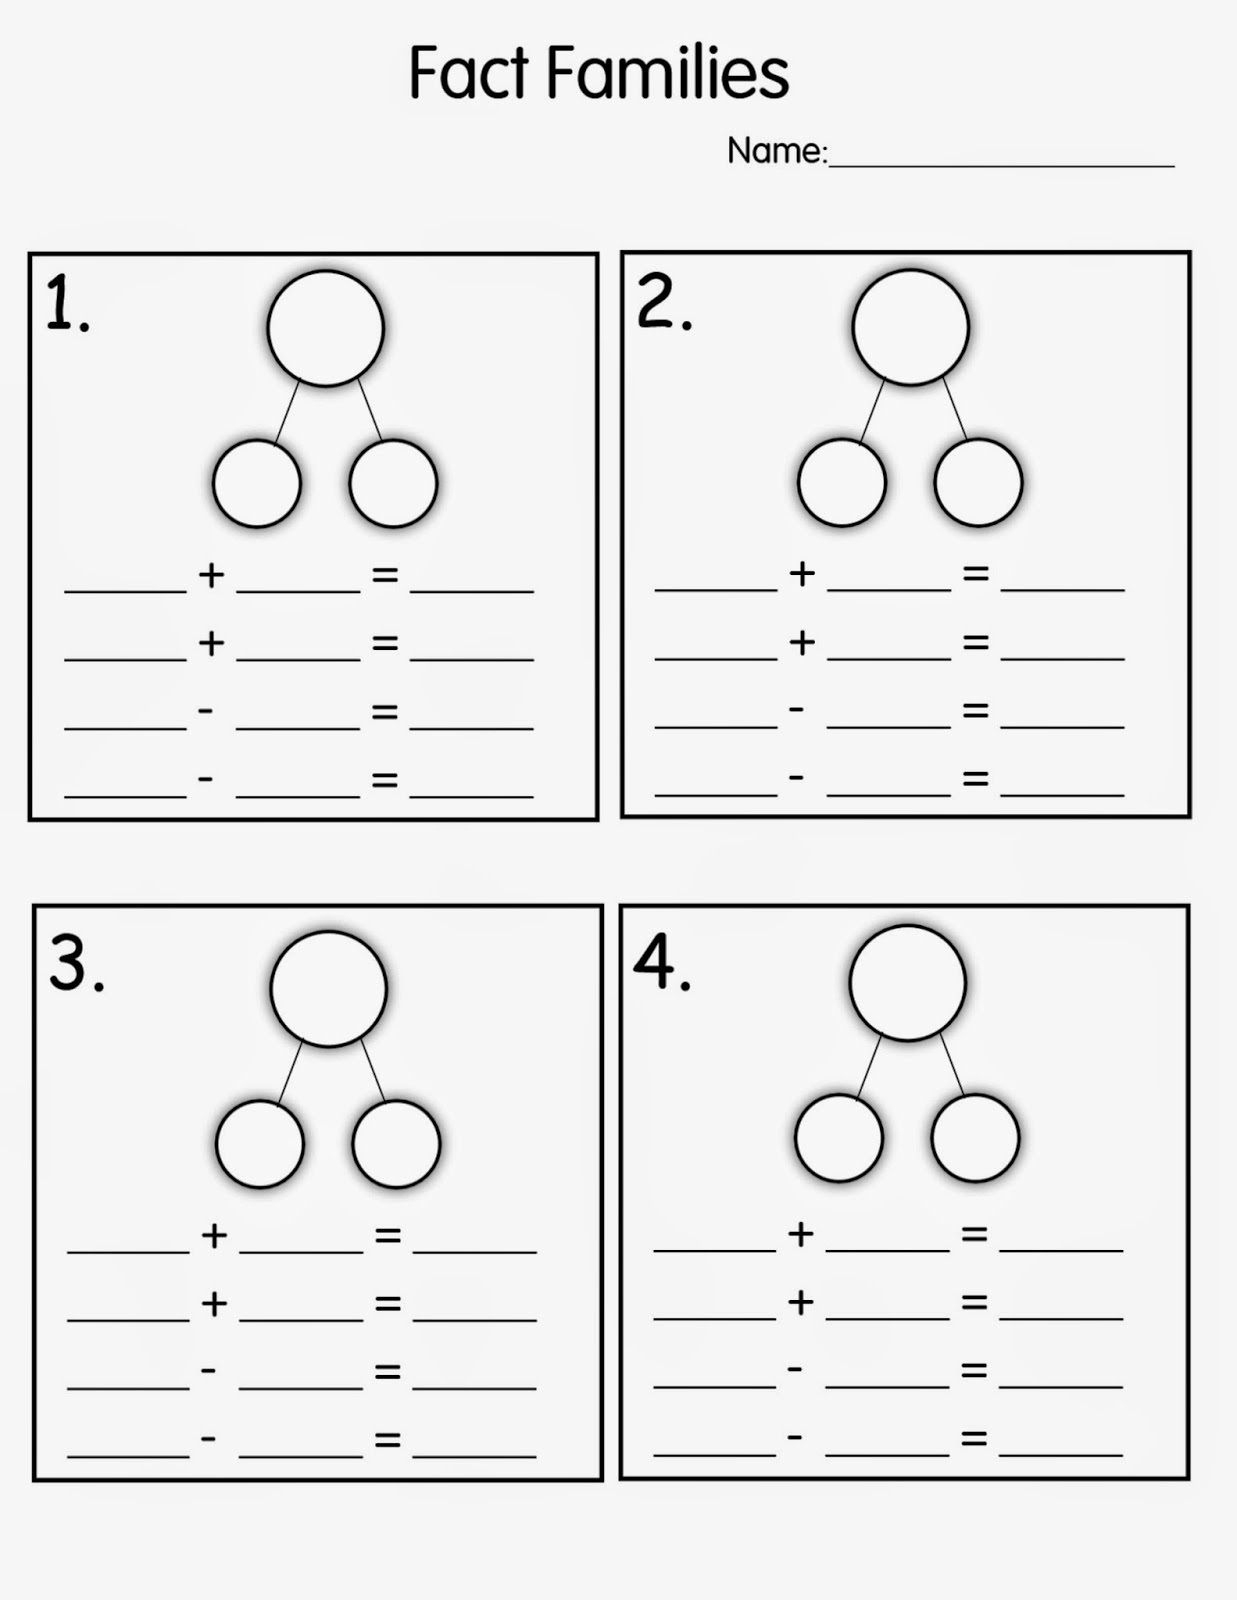 Number Family Worksheets For Kids | Math Worksheets For Kids - Free Printable Number Bond Template